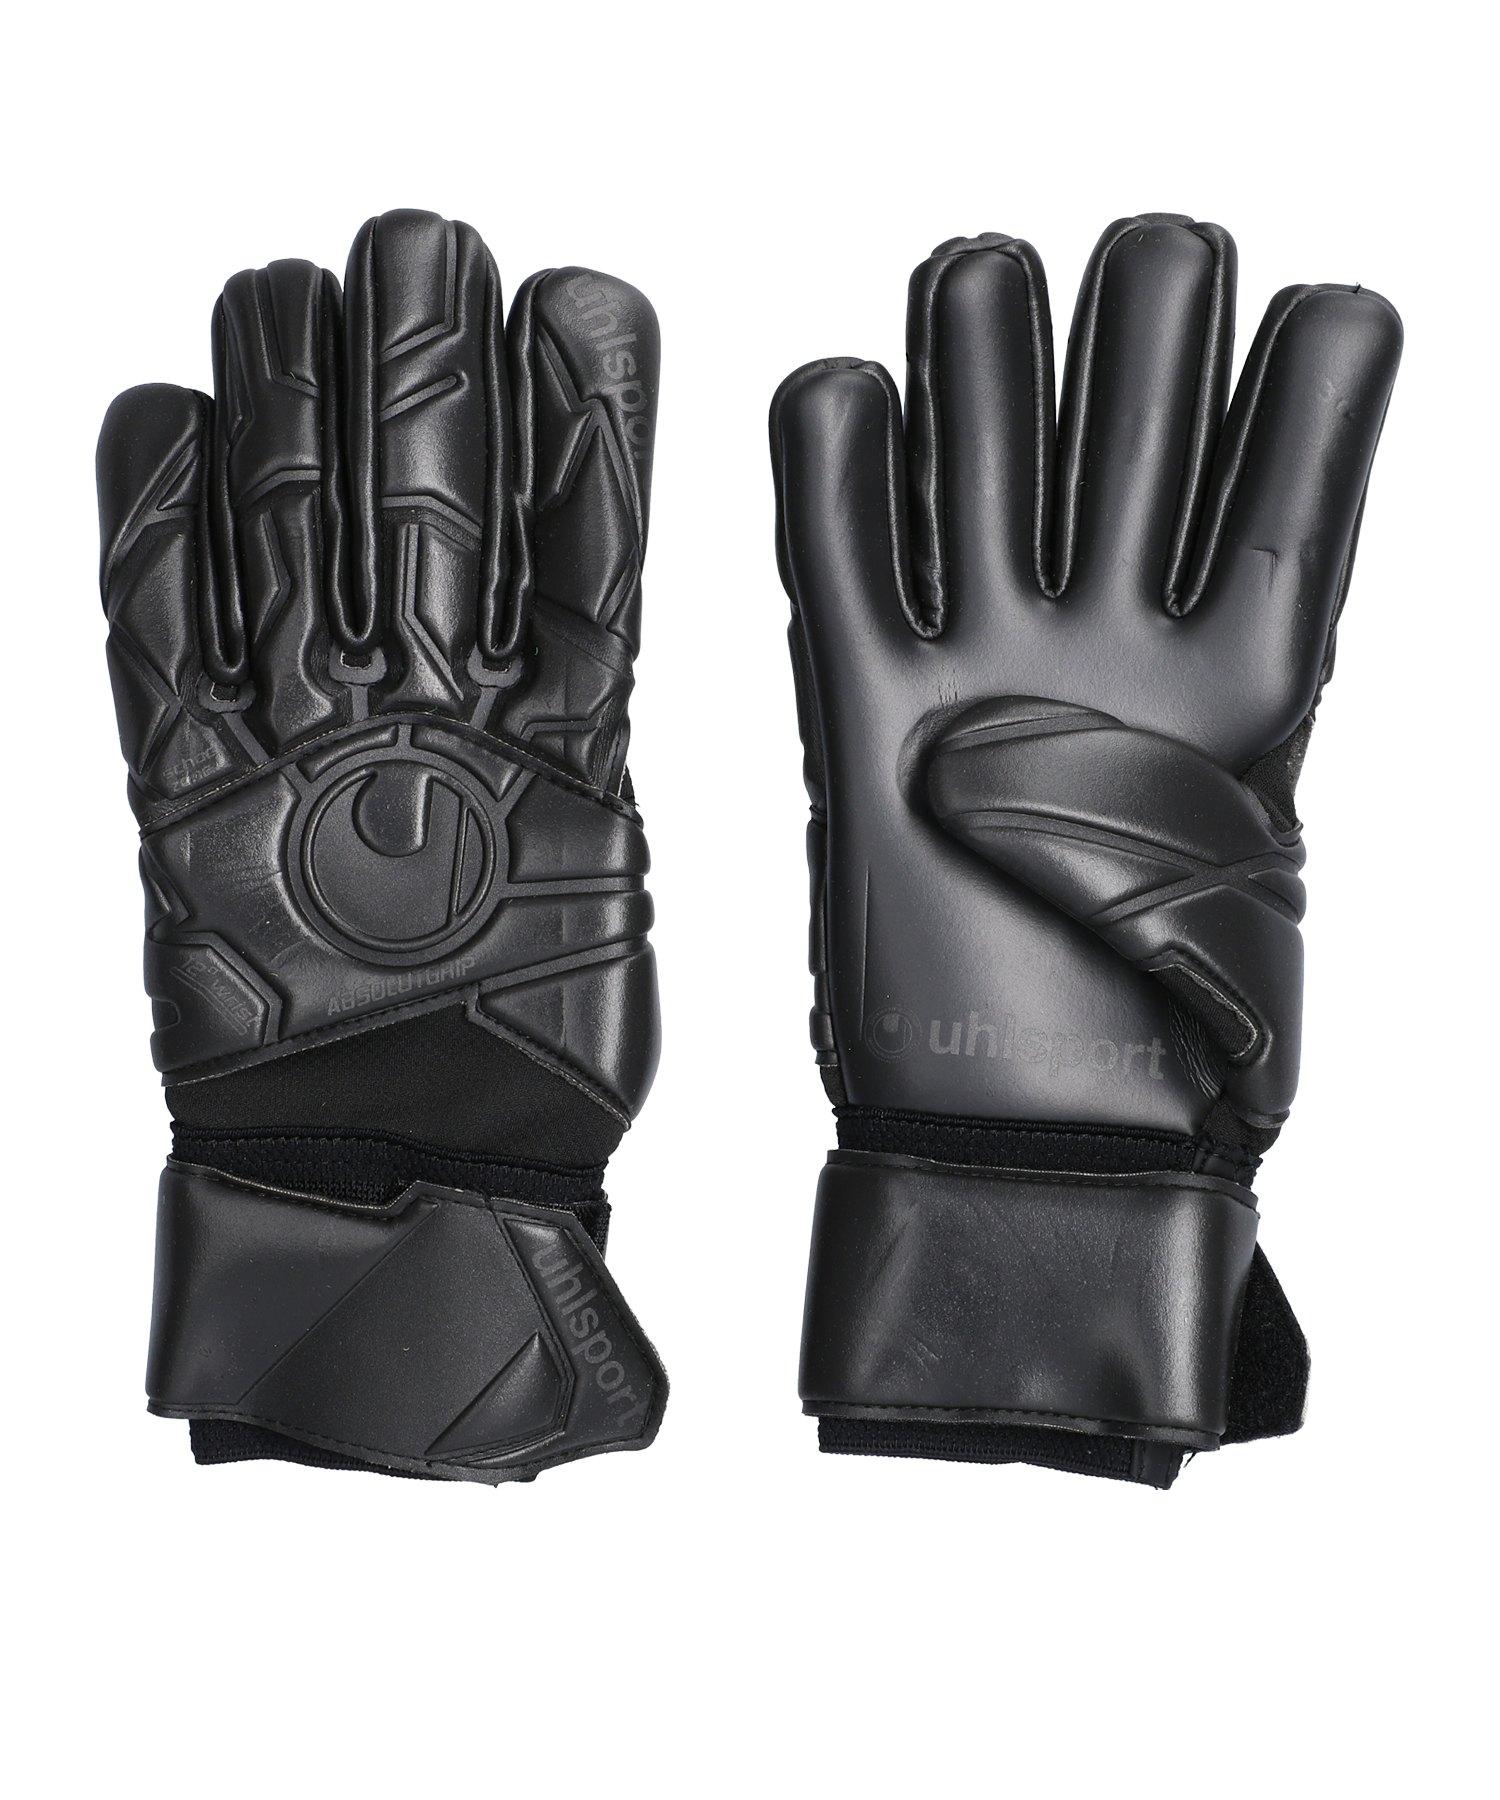 Uhlsport Black Edition Absolutgrip Handschuh F01 - schwarz